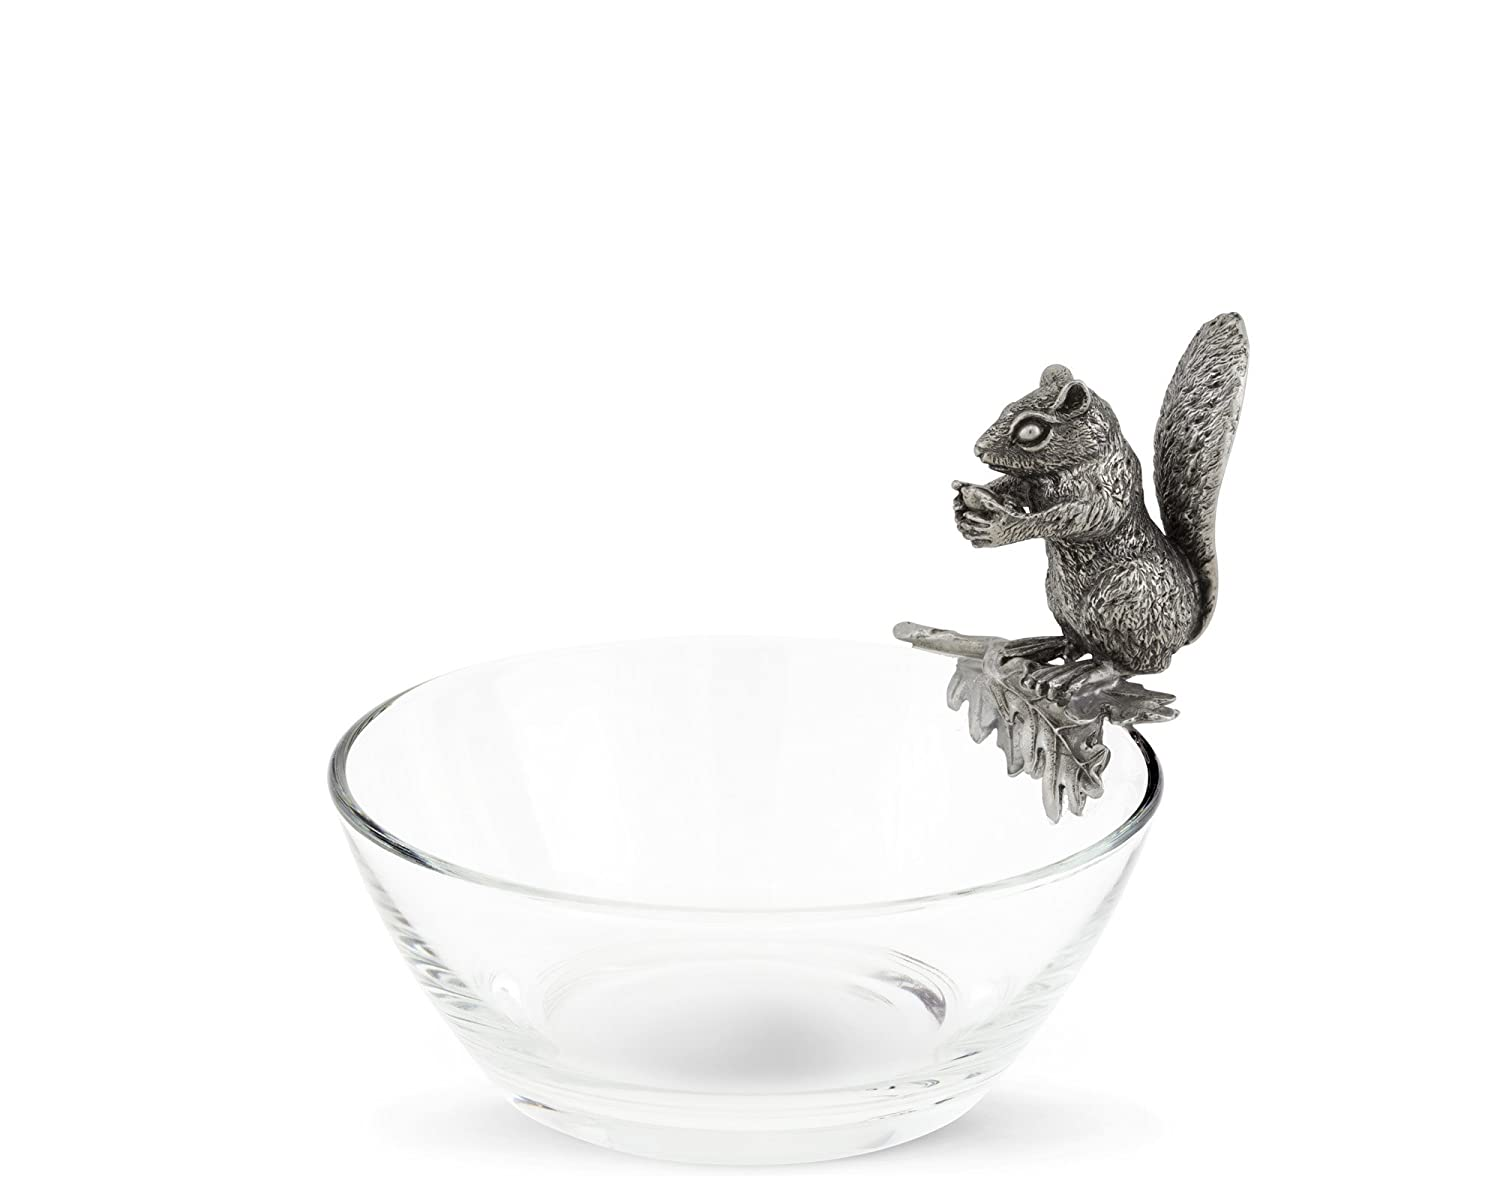 Vagabond House Glass Nut Bowl with Pewter Perched Squirrel 6